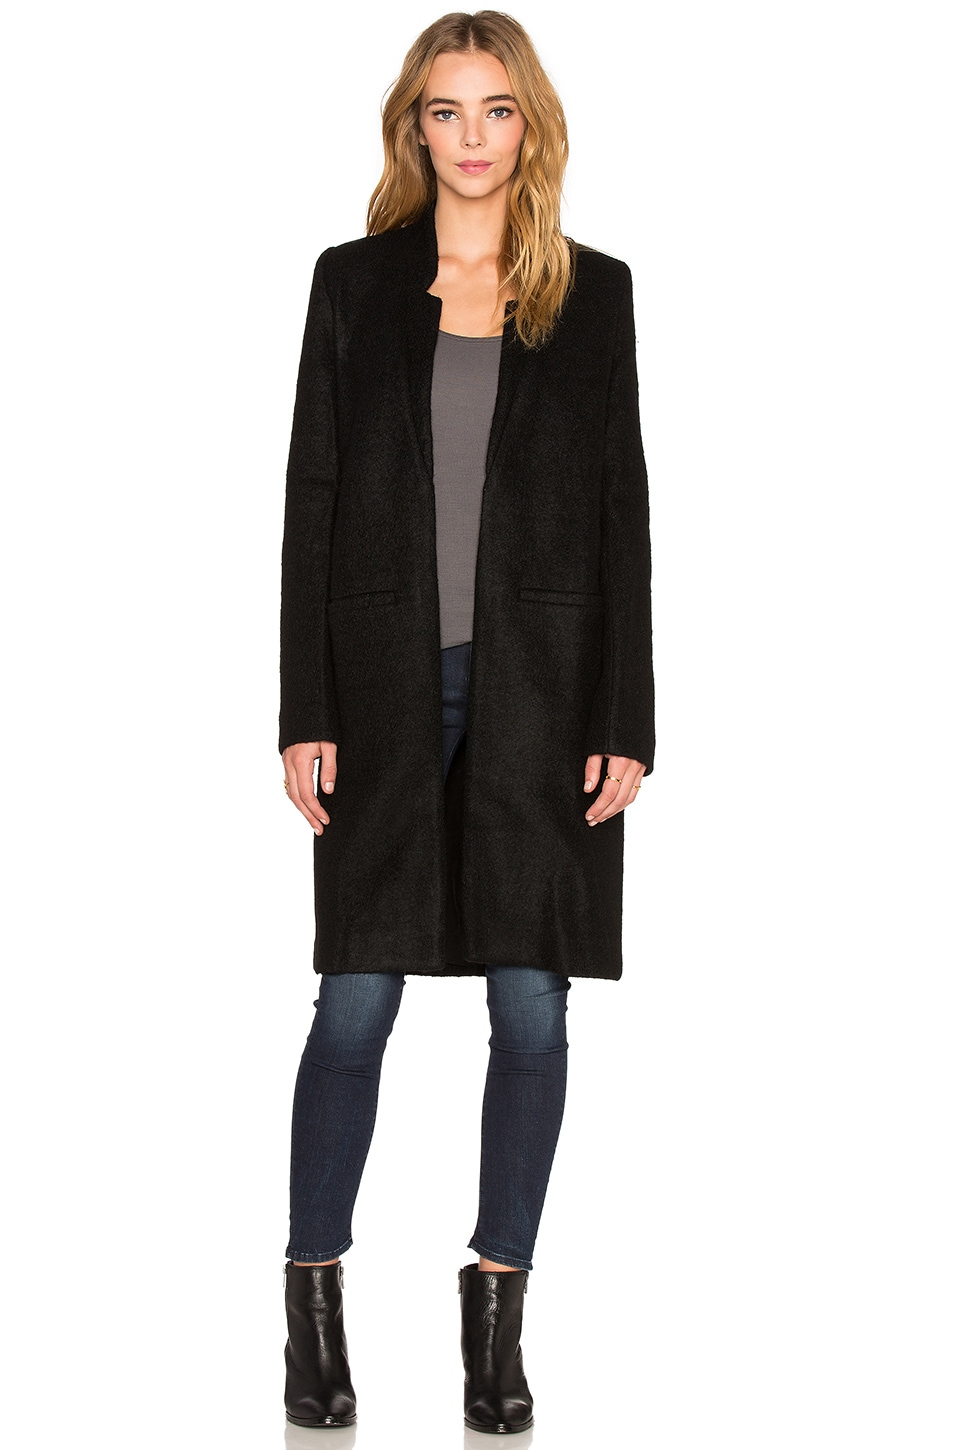 State of Being Tailored Coat in Black | REVOLVE